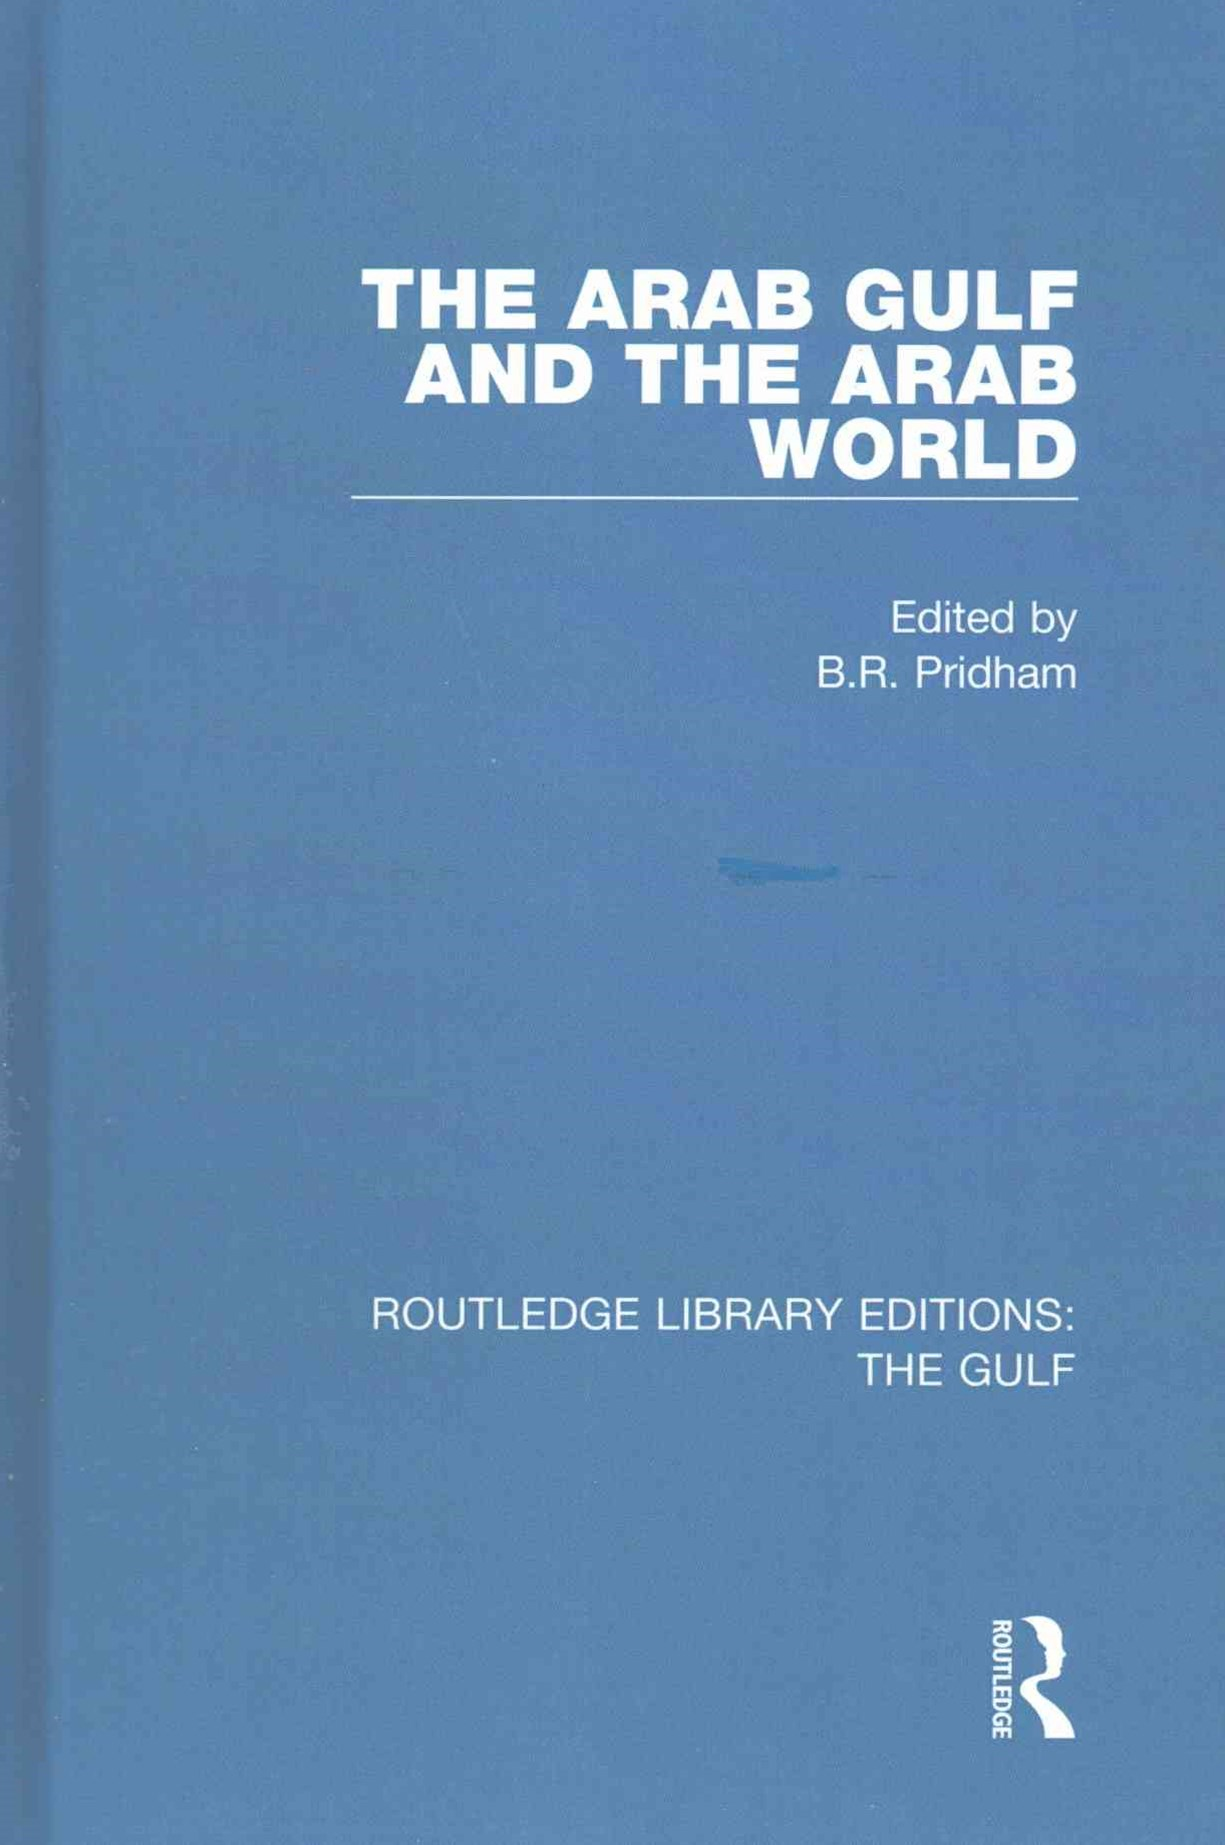 Routledge Library Editions: The Gulf